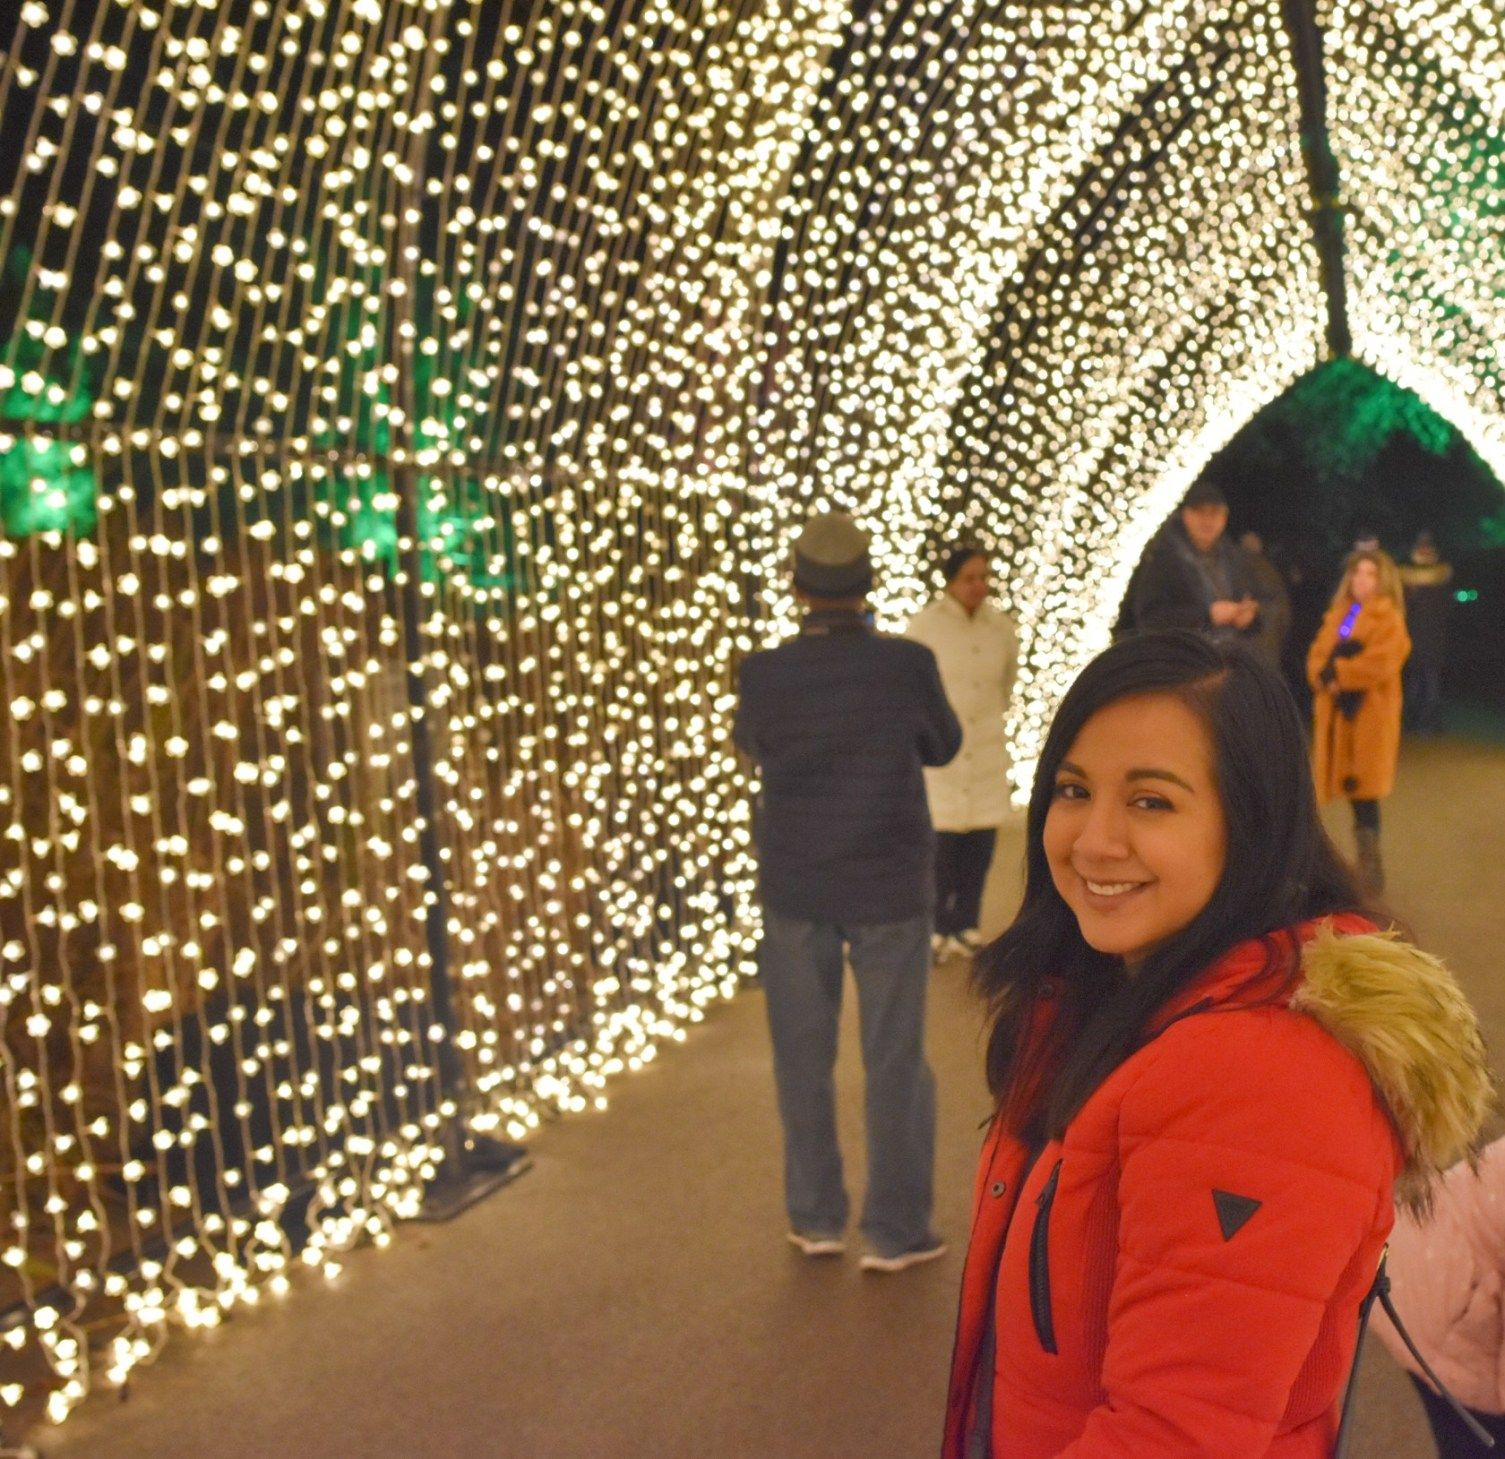 Our Visit to Lightscape at Chicago Botanic Garden